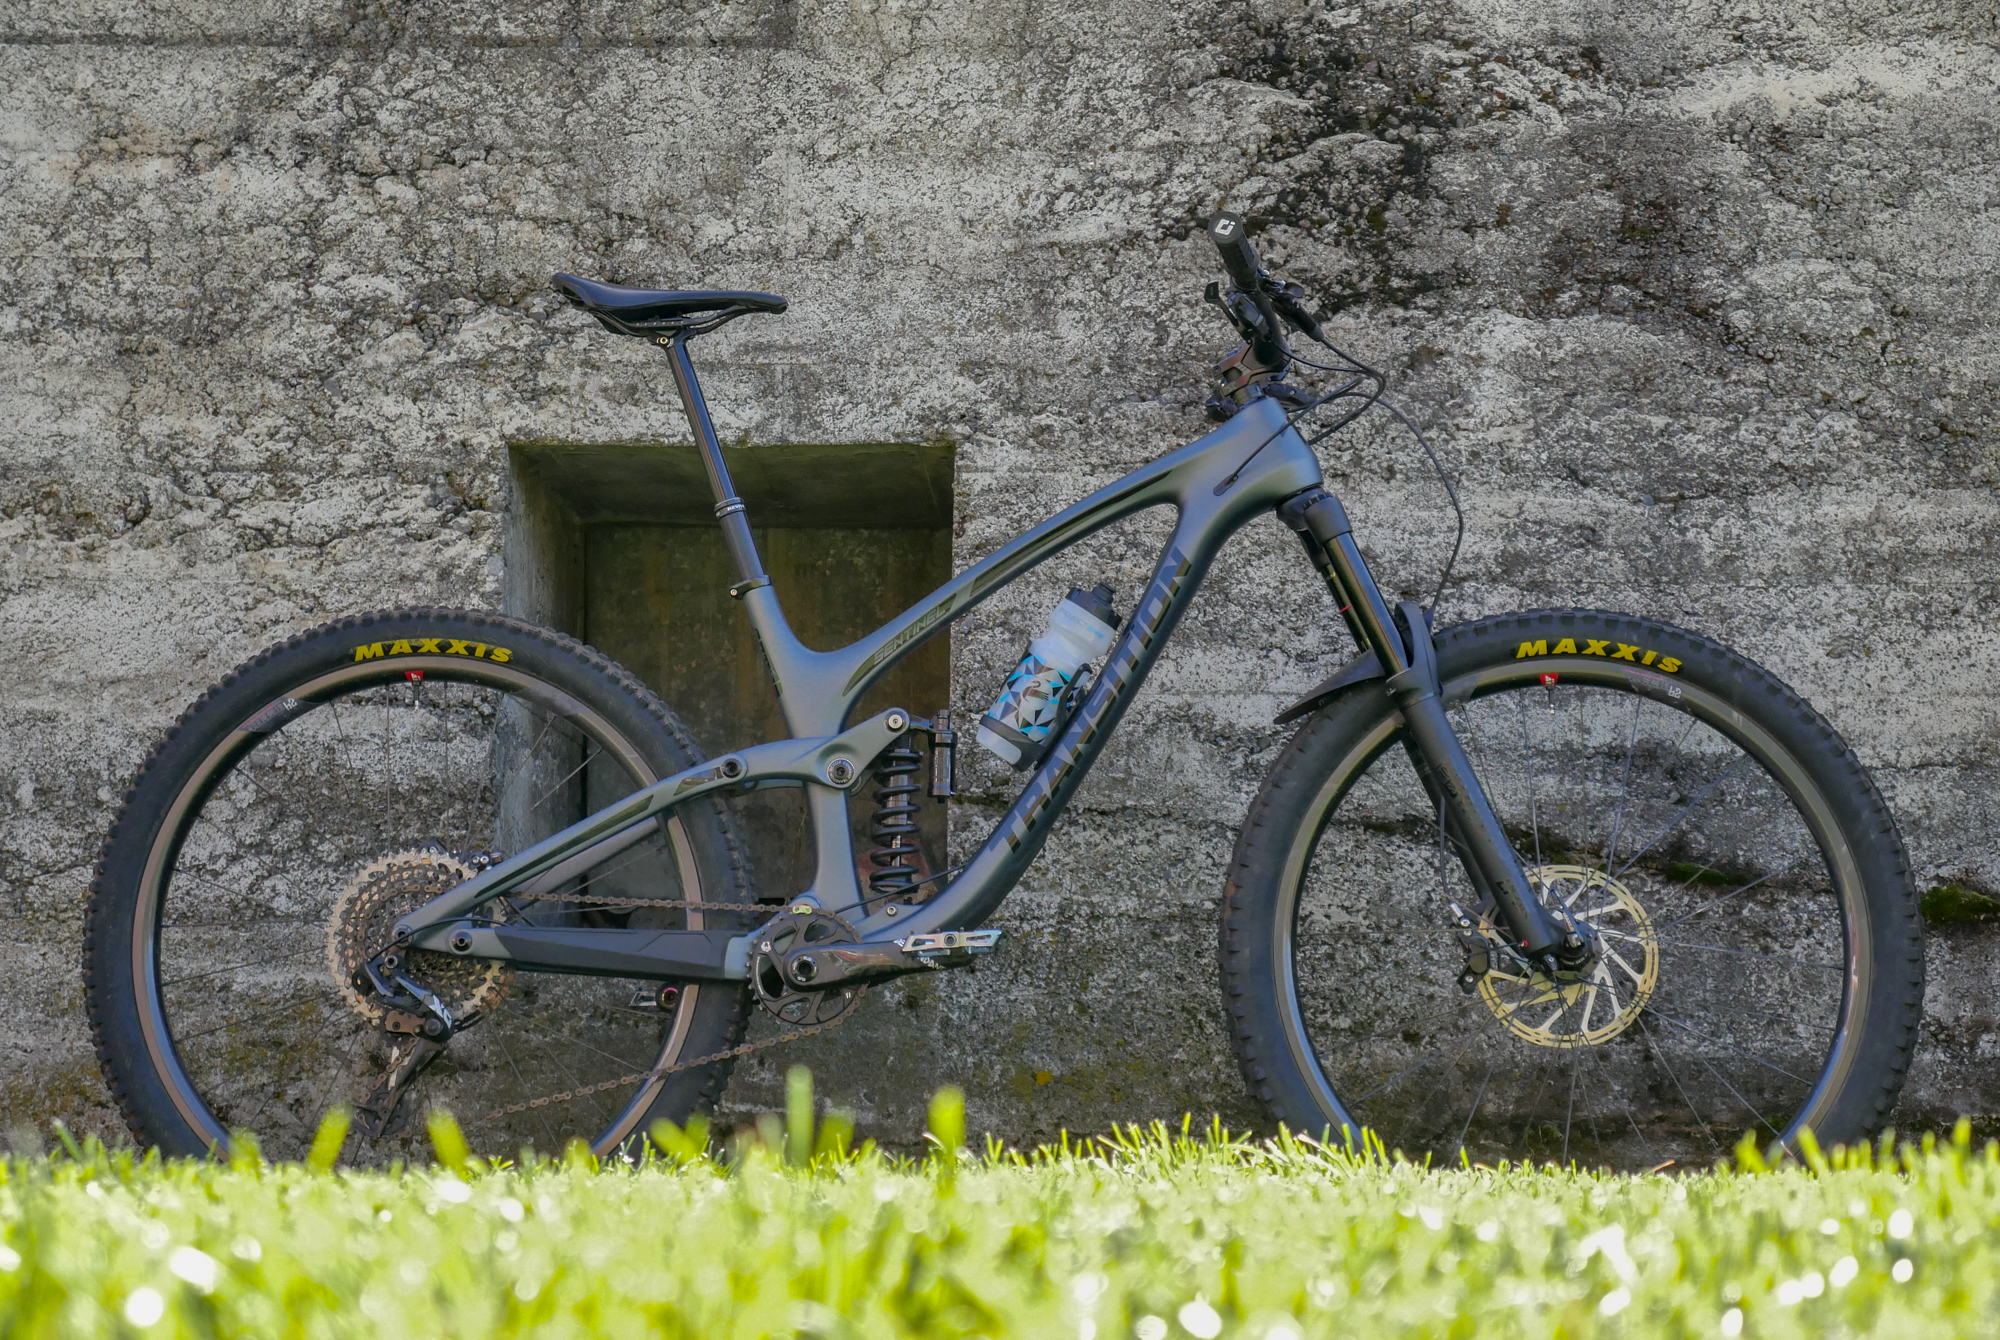 2019 transition Sentinel Carbon billy